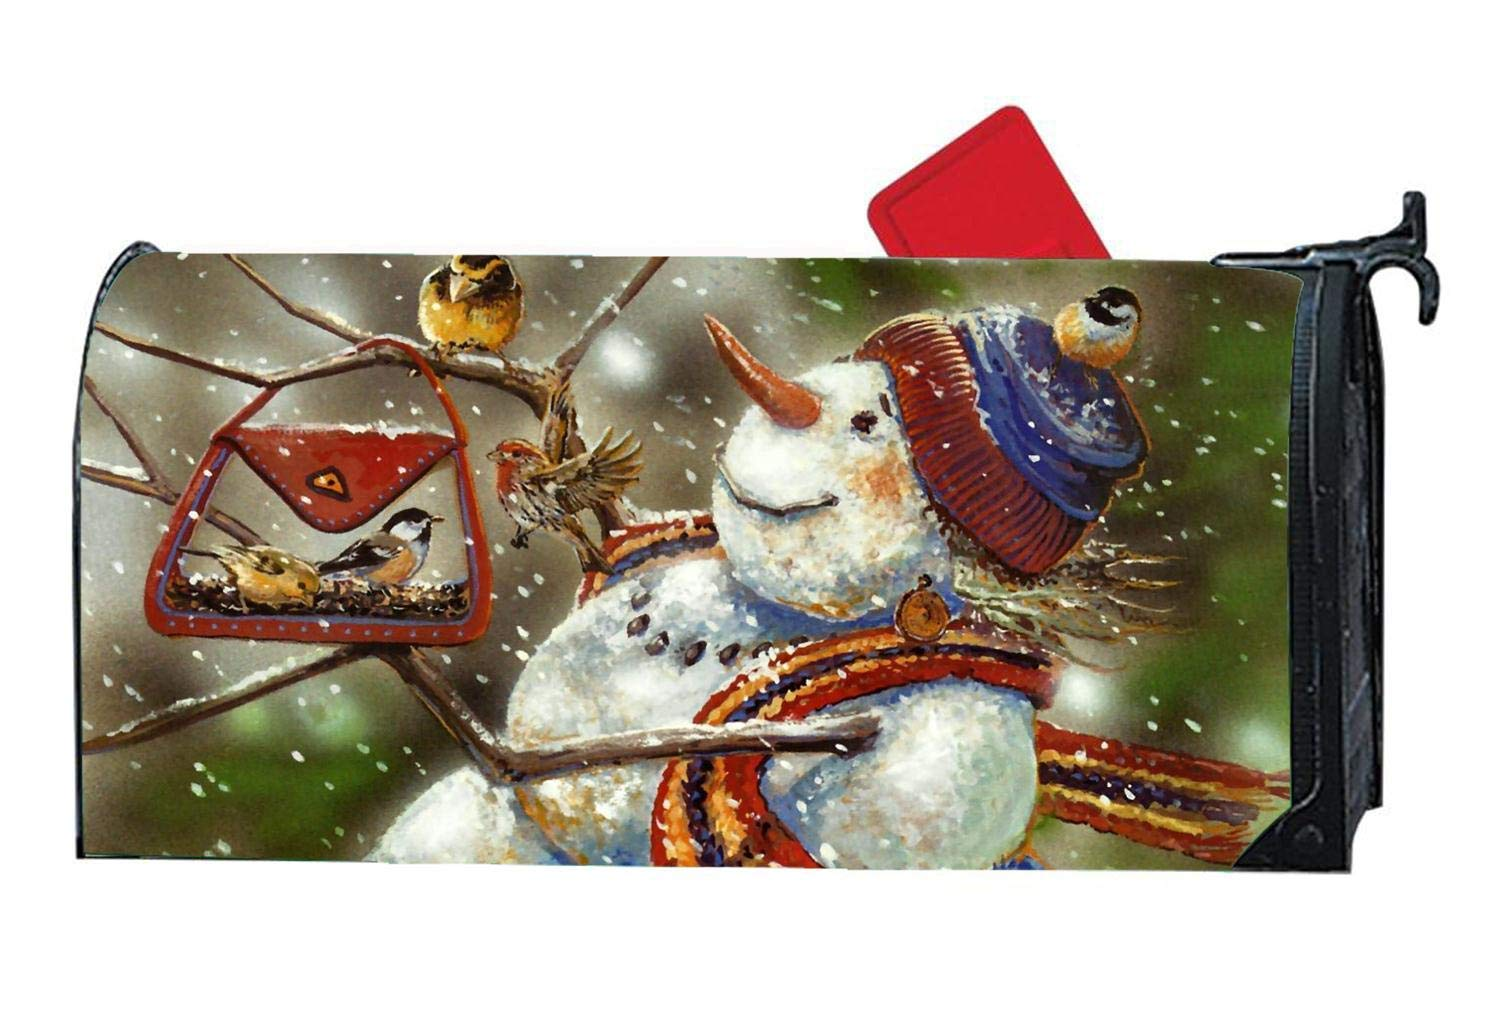 """YongSD Magnetic Mailbox Cover Standard 6.5""""x 19""""- Spring Winter Birds Themed, Decorative Vinyl Mailbox Wrap for Standard Size, Multicolor - Christmas Snowman Goldfinch Chickadee"""